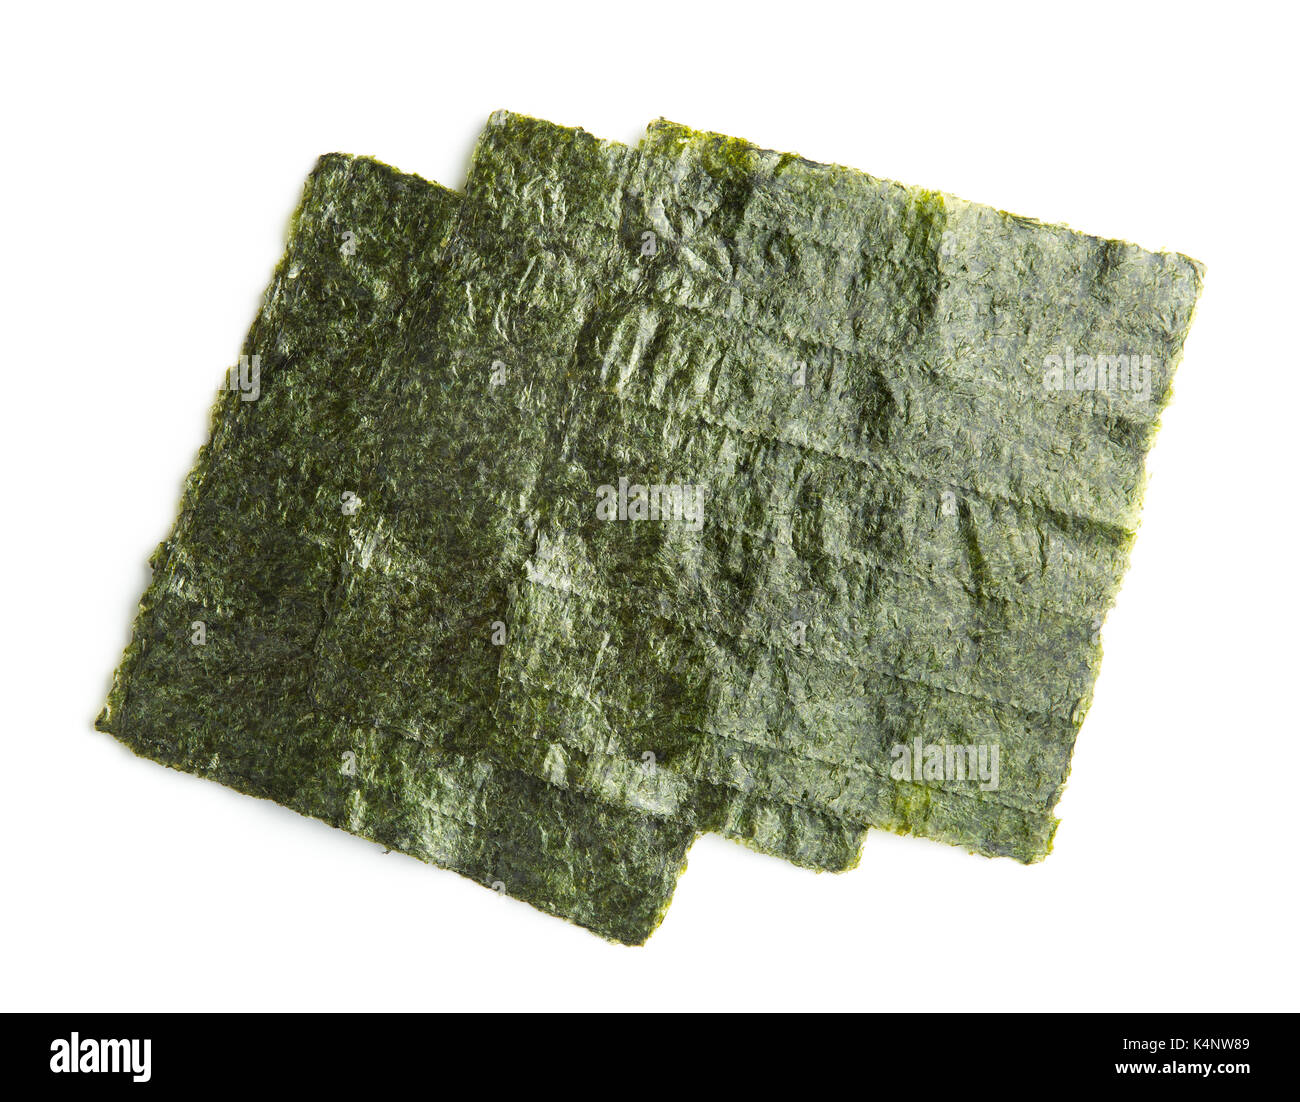 Green nori sheet isolated on white background. Nori is the ingredient for sushi. - Stock Image